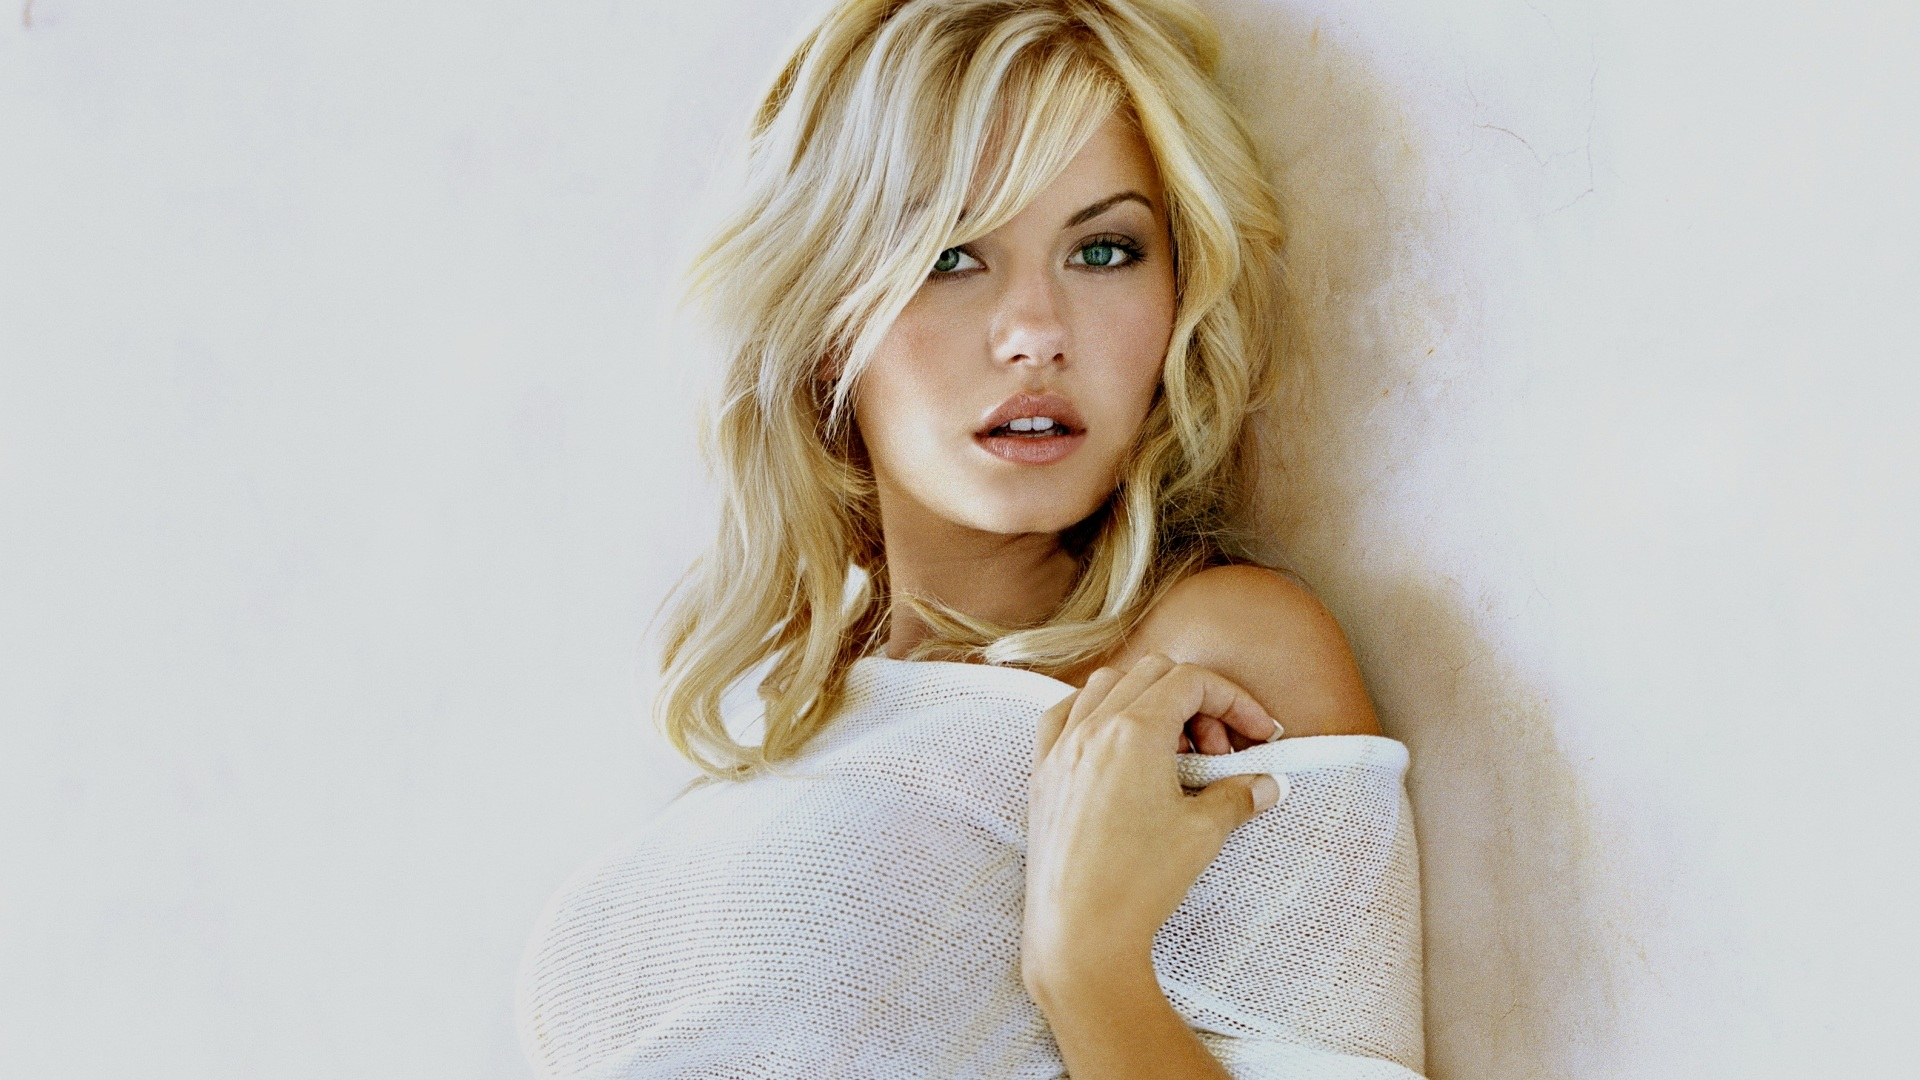 Wallpaper Elisha Cuthbert 04 1920x1200 Hd Picture Image